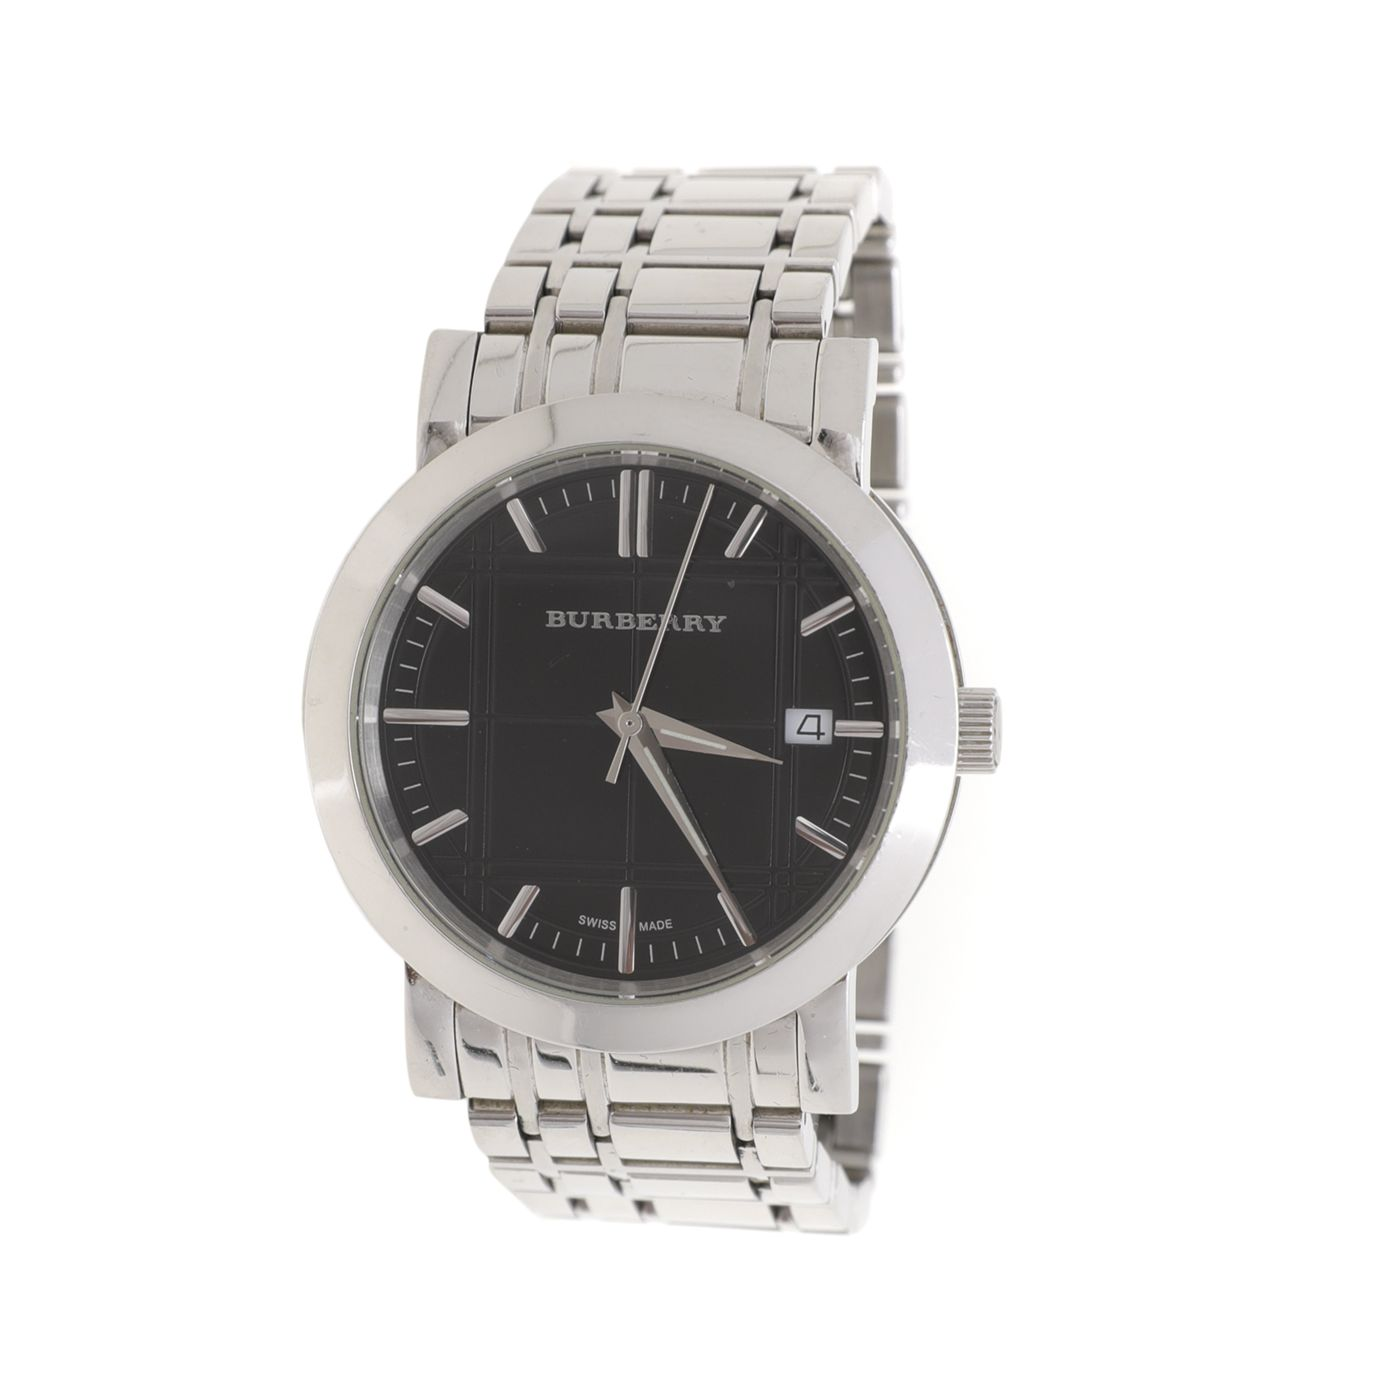 Burberry Stainless Steel Black Heritage Classic Men's Watch